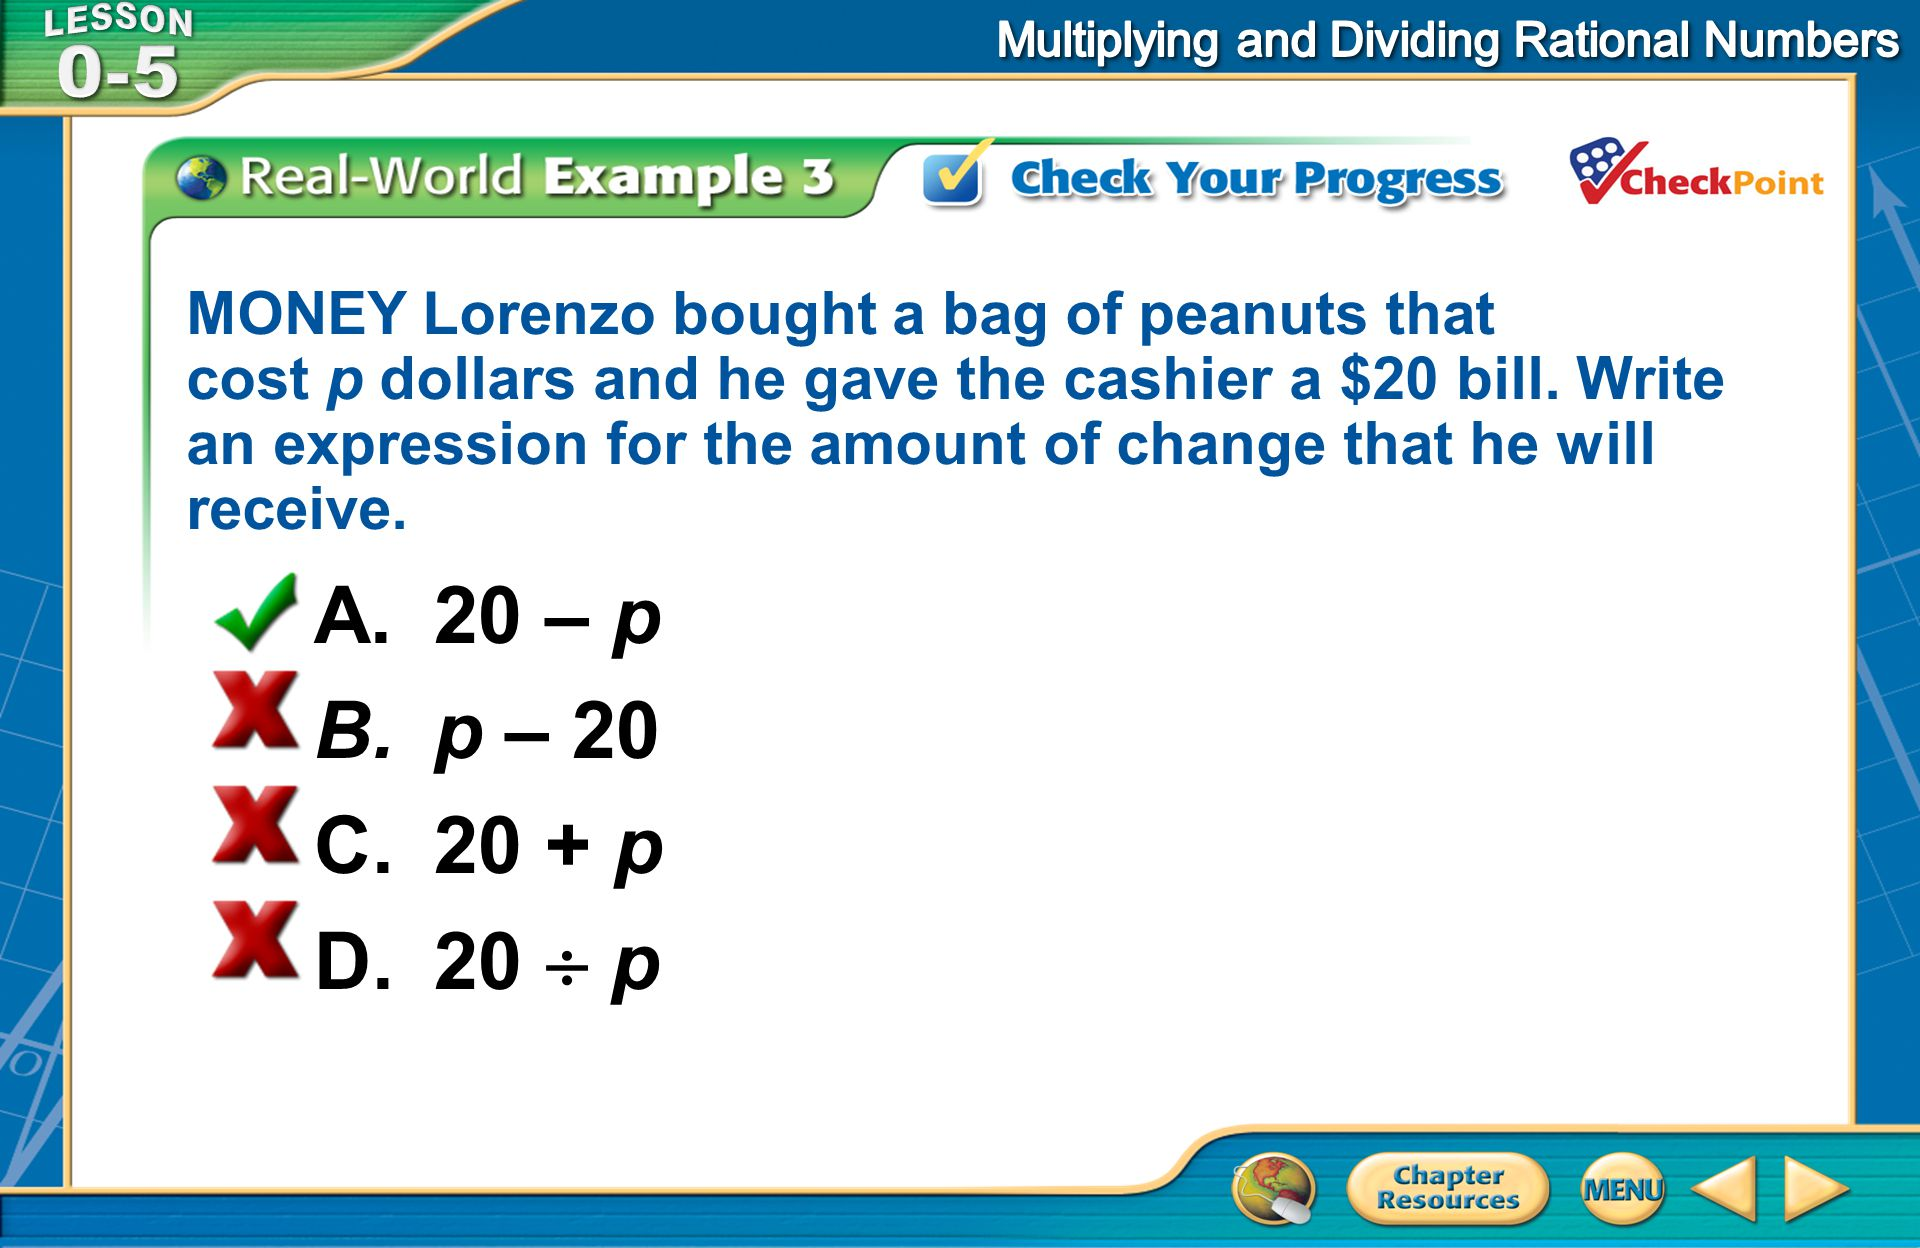 [Enter question here] A.20 – p B.p – 20 C.20 + p D.20 p MONEY Lorenzo bought a bag of peanuts that cost p dollars and he gave the cashier a $20 bill.